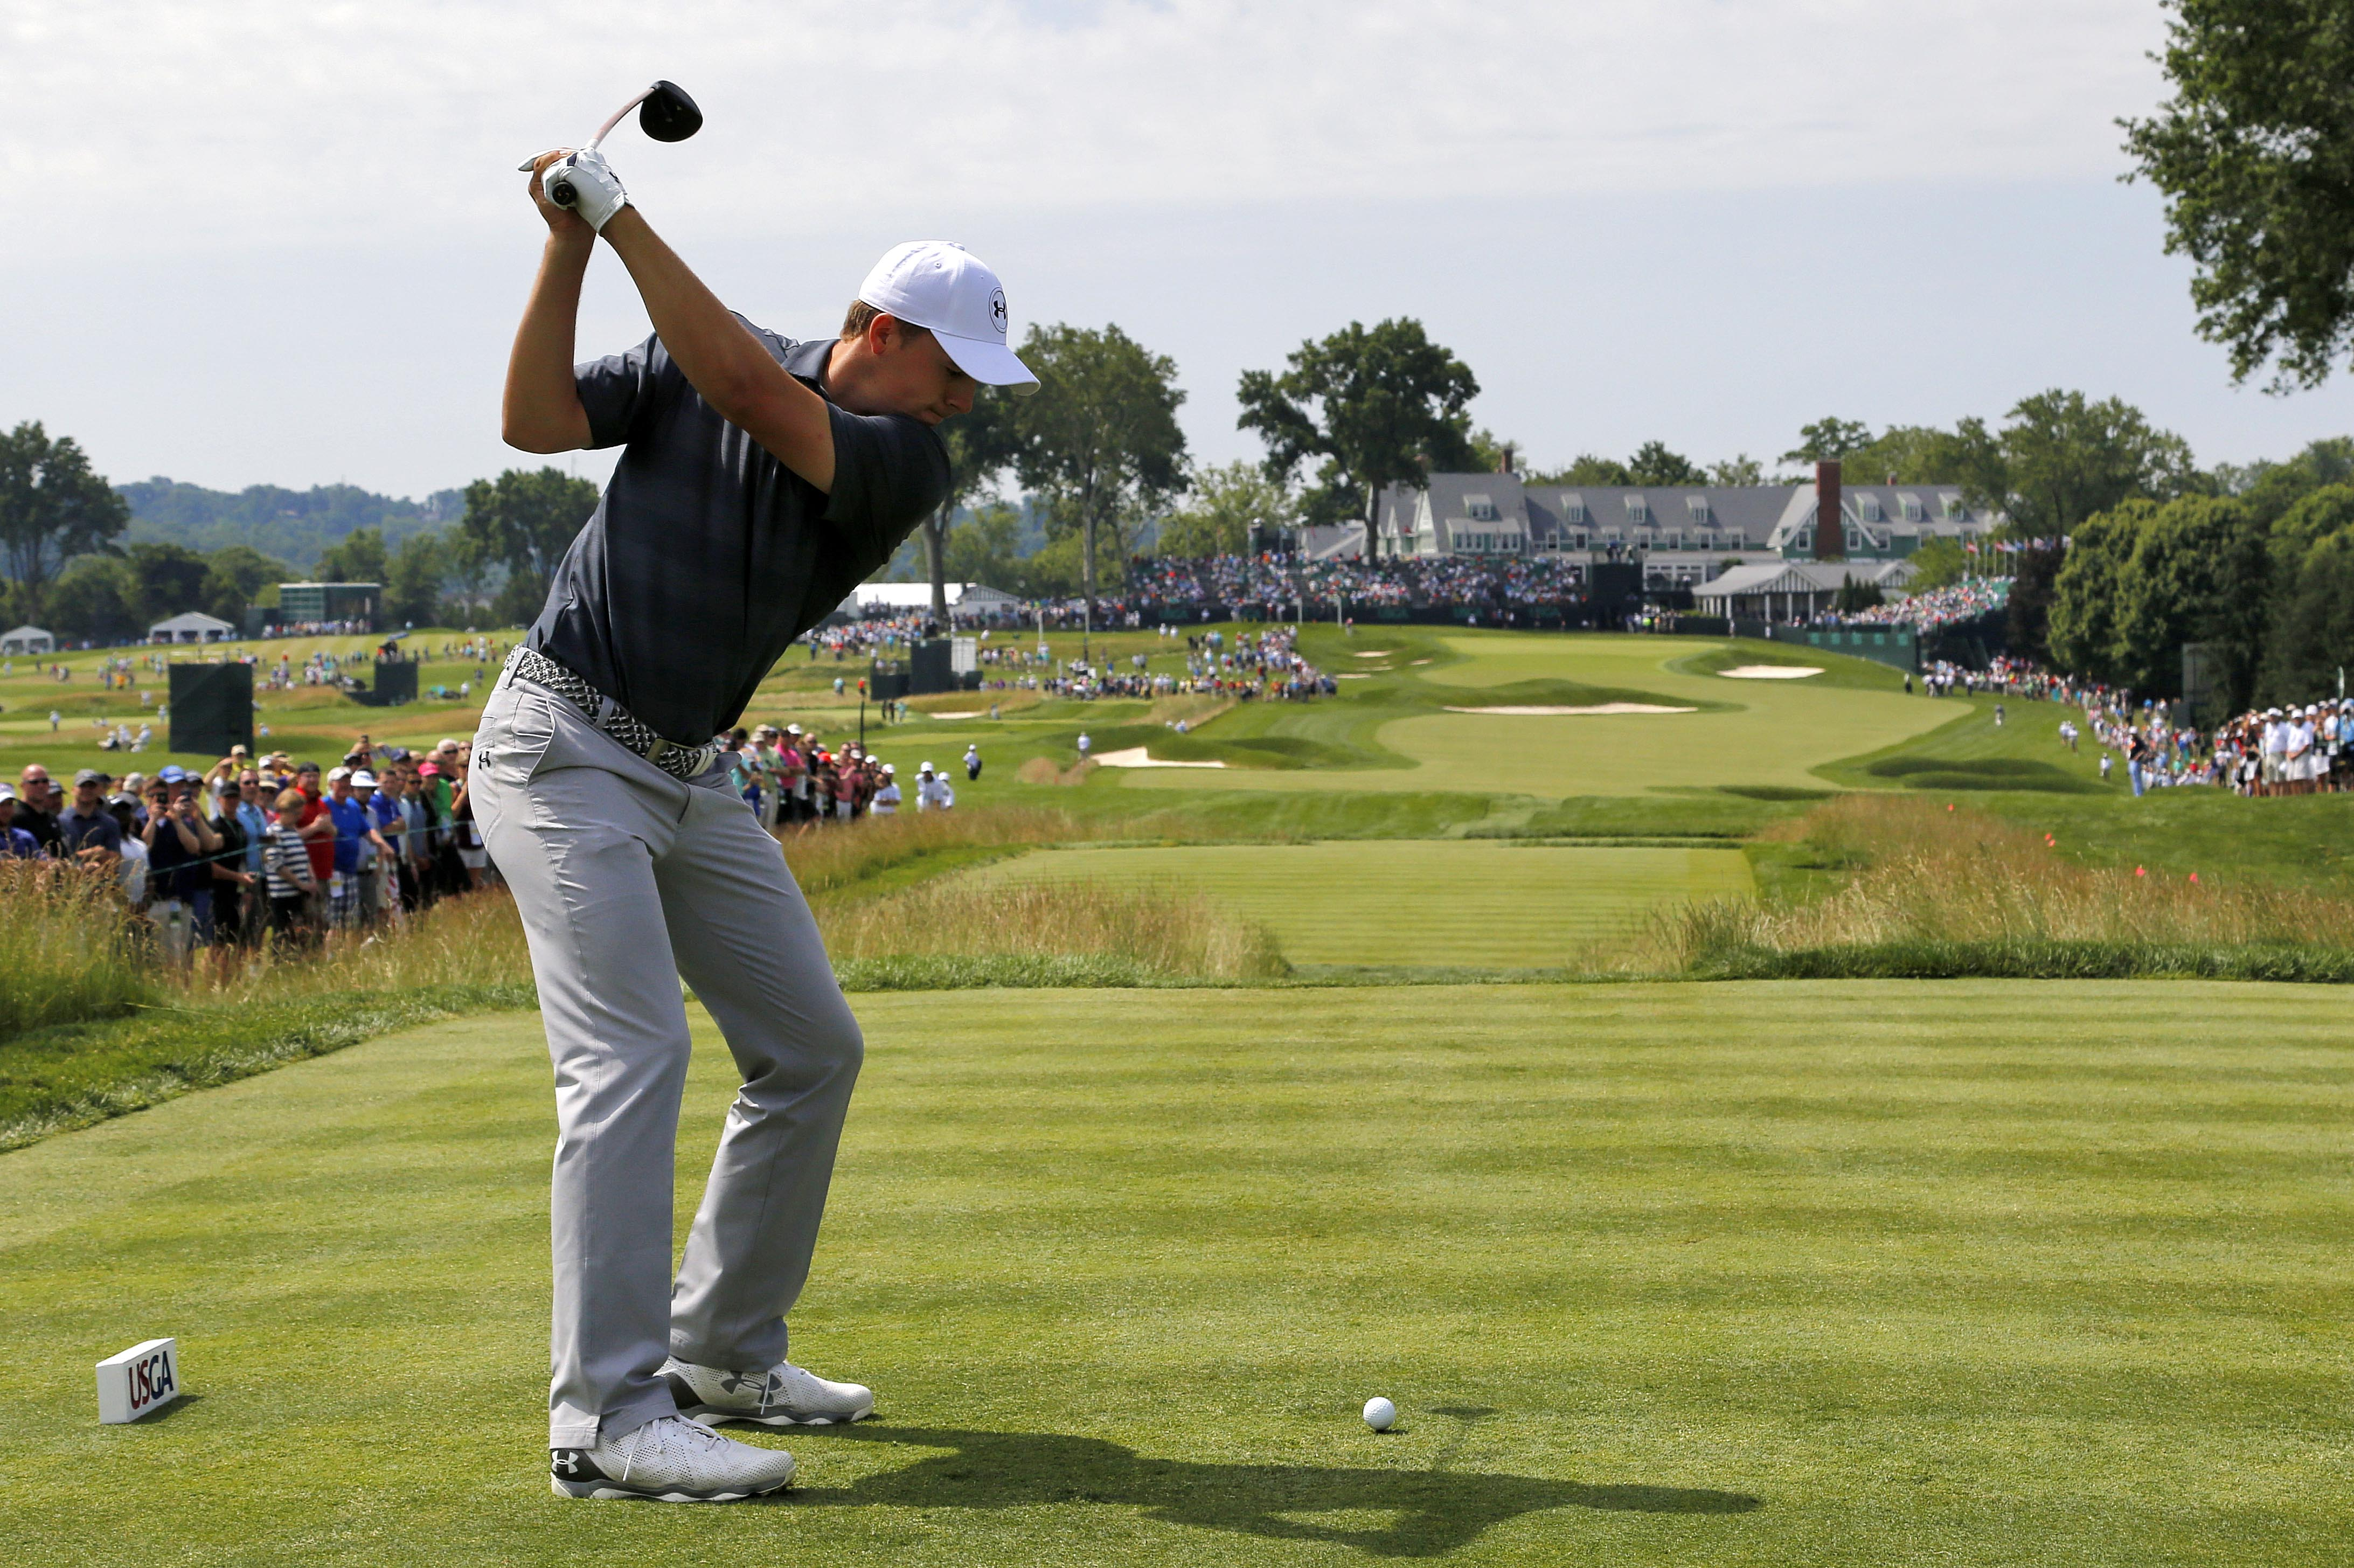 Jordan Spieth hits his tee shot on the 18th hole during a practice round for the U.S. Open golf championship at Oakmont Country Club on Wednesday, June 15, 2016, in Oakmont, Pa. (AP Photo/Gene J. Puskar)